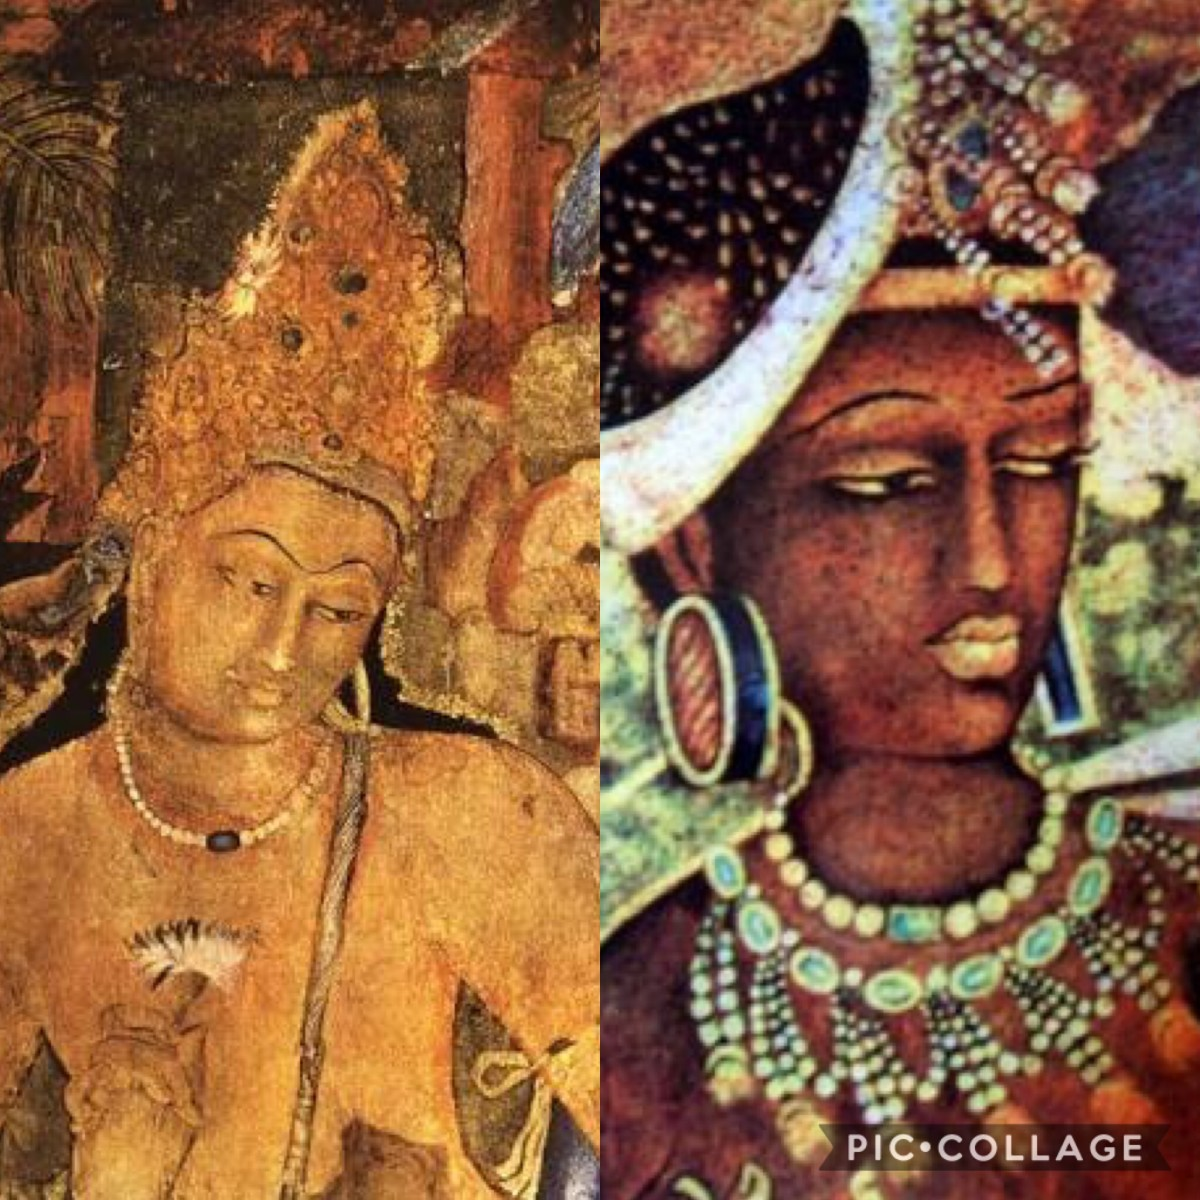 The Ancient Indian Art, Architecture, and Sculpture in the Caves: The Ajanta and Ellora Caves